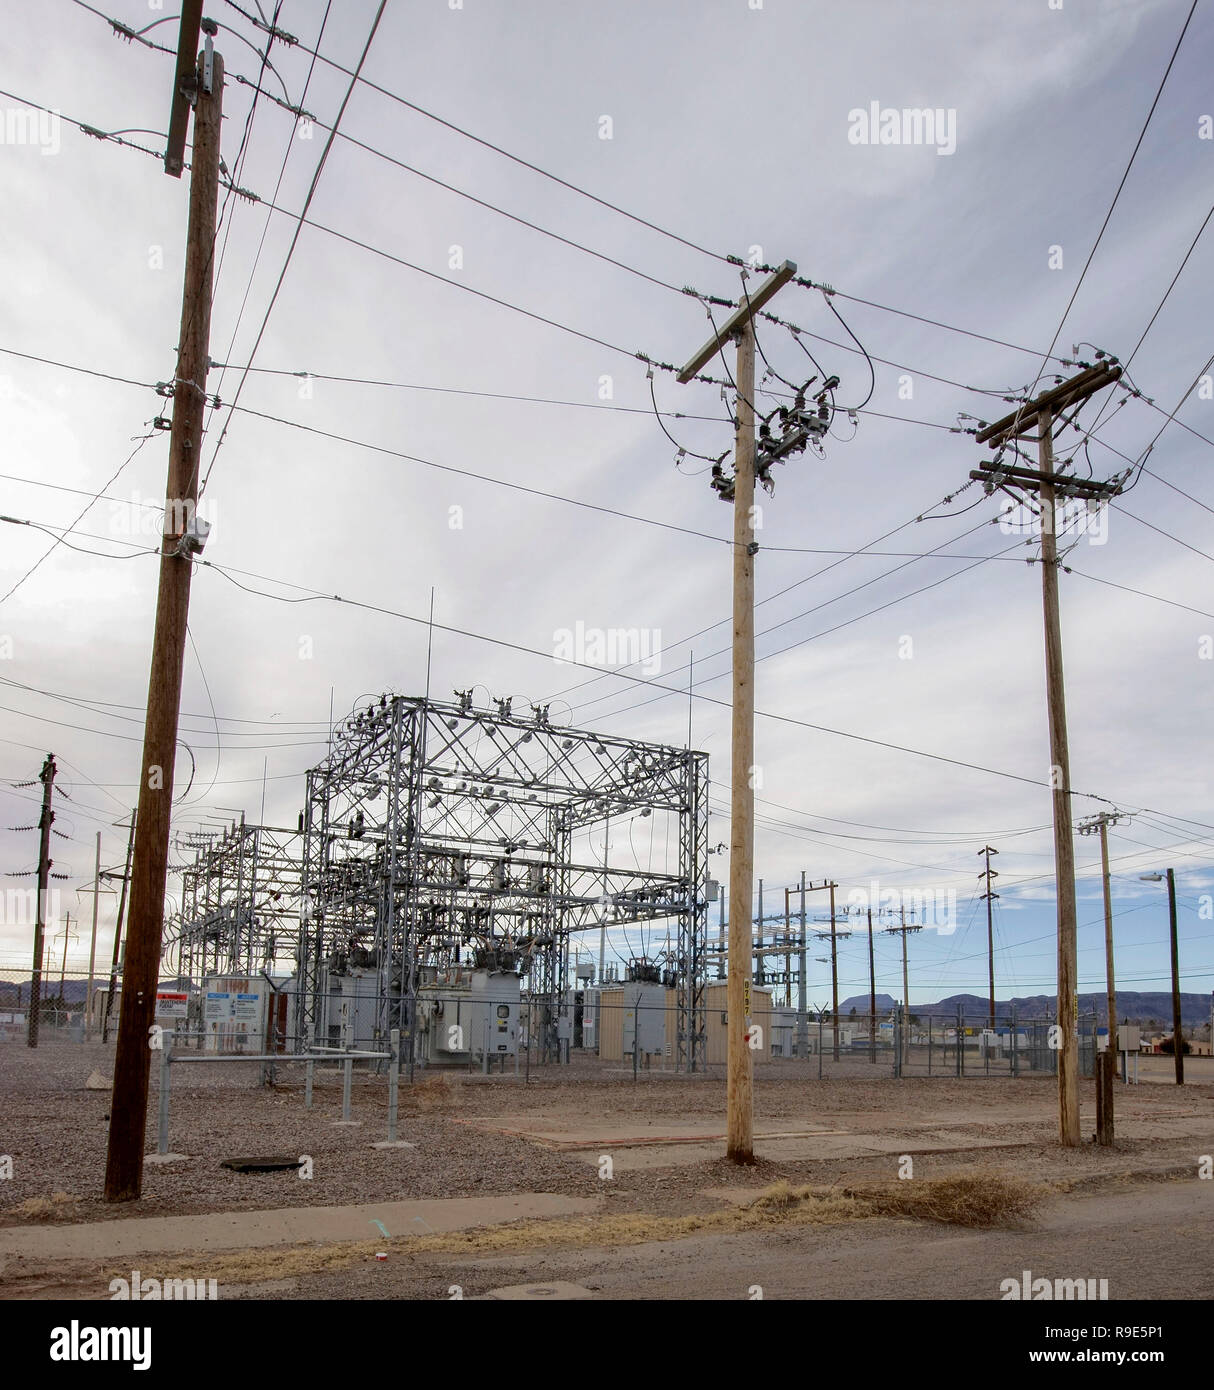 Electricity substation in Alpine, Texas - Stock Image